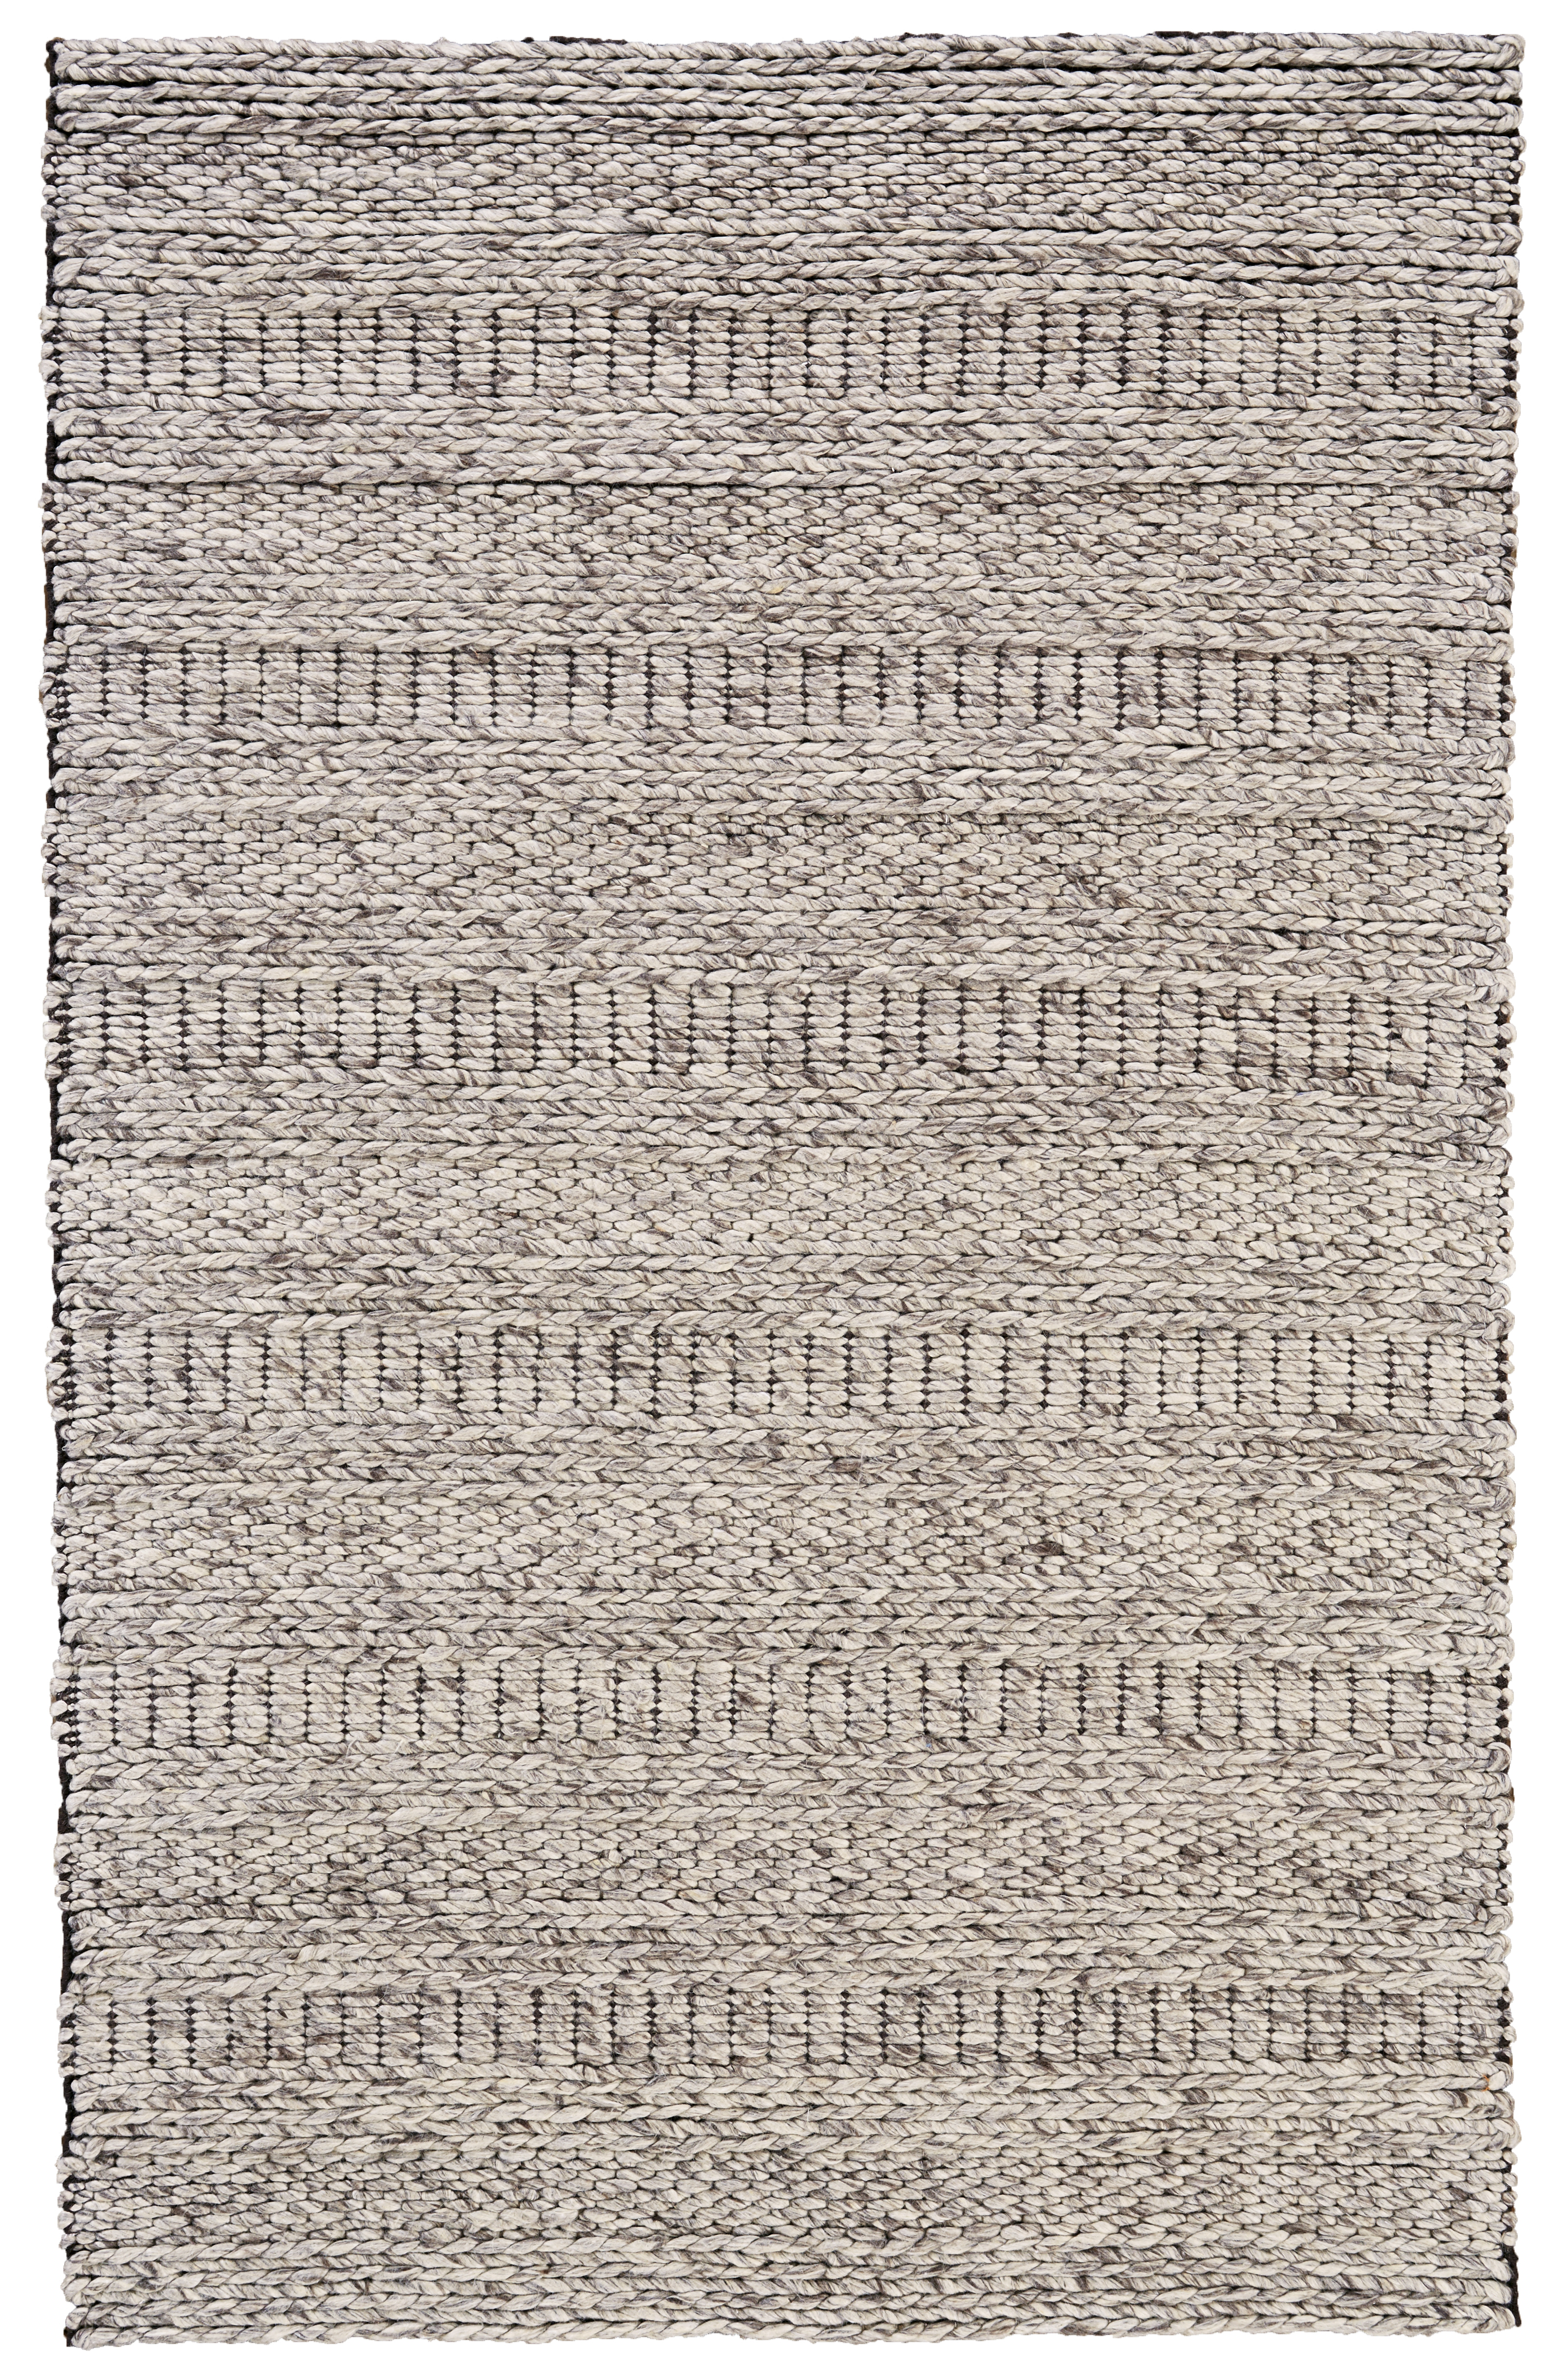 Feizy Berkeley collection rug